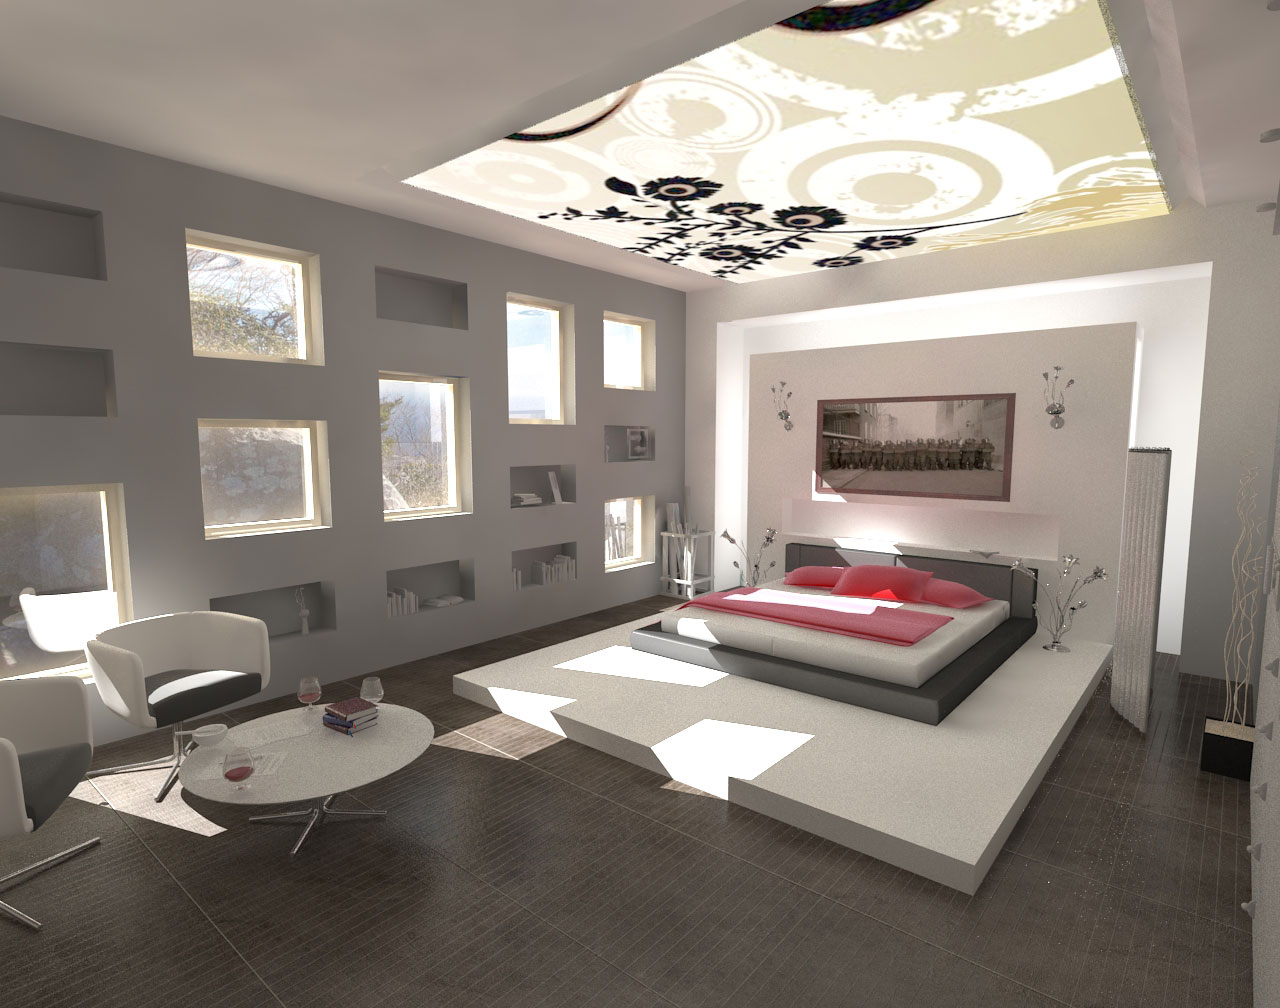 room designs Interior Design Center Inspiration